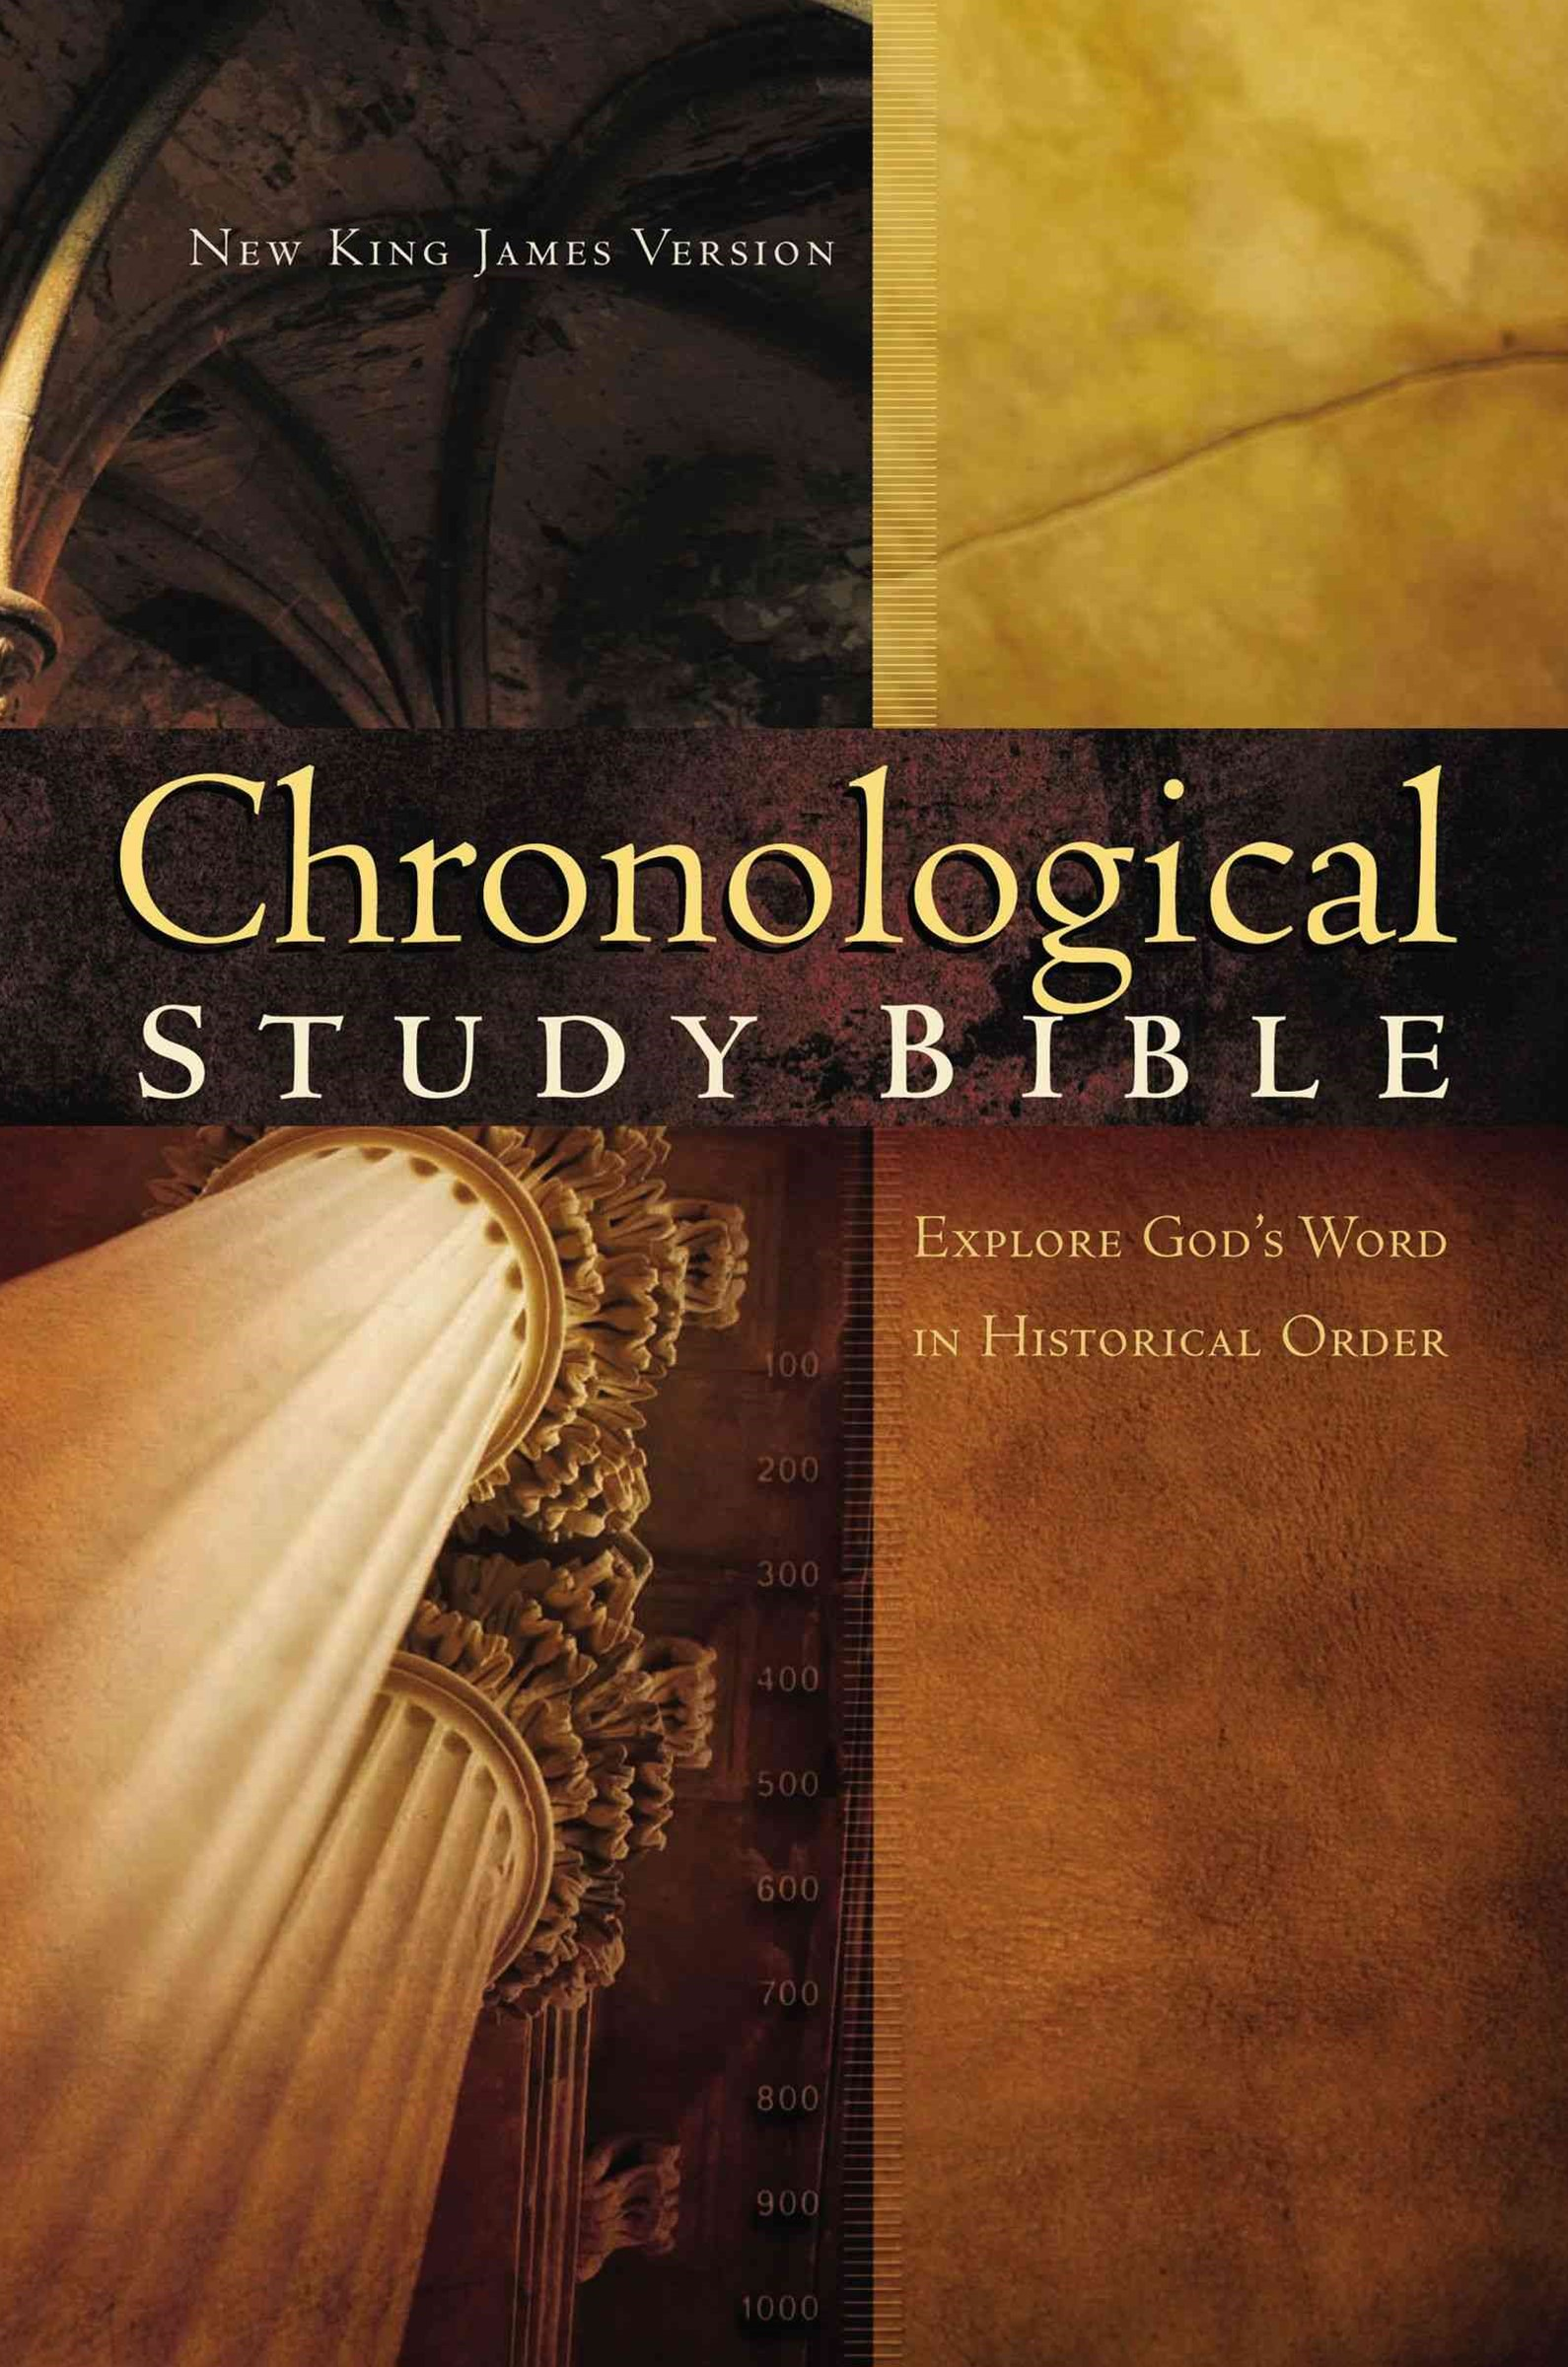 NKJV, the Chronological Study Bible